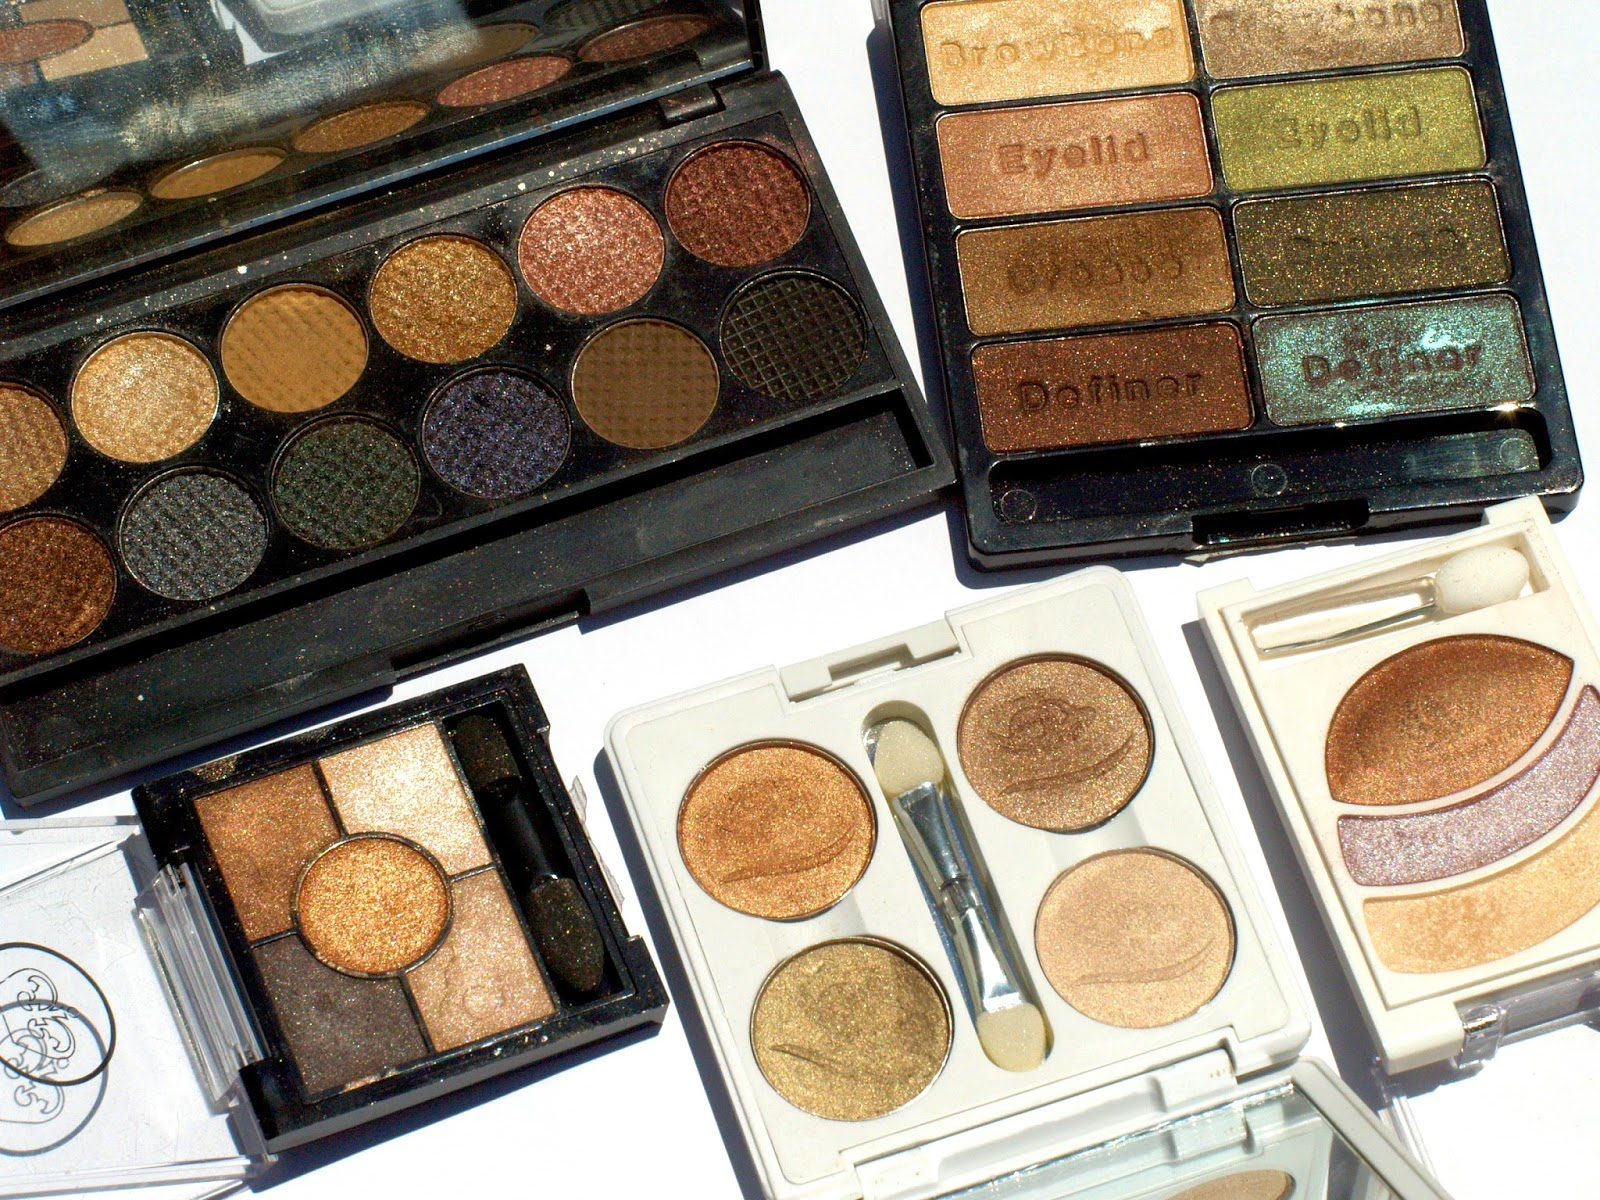 Top 5 Drugstore Eyeshadow Palettes